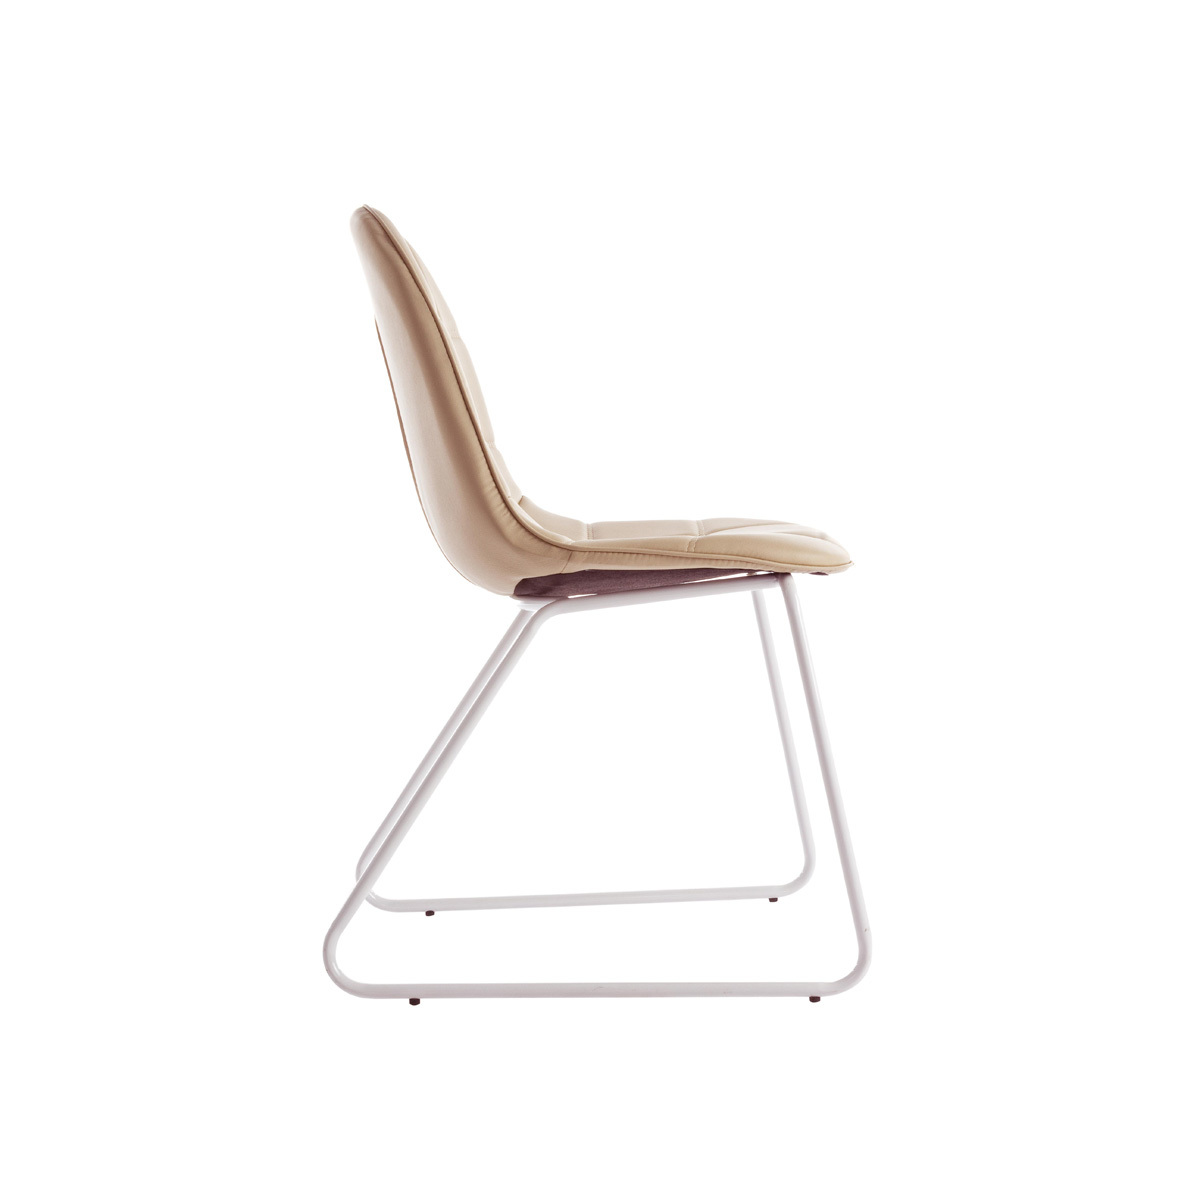 Photos 2: Bizzotto Chair in metal and eco-leather - tortora 0731656